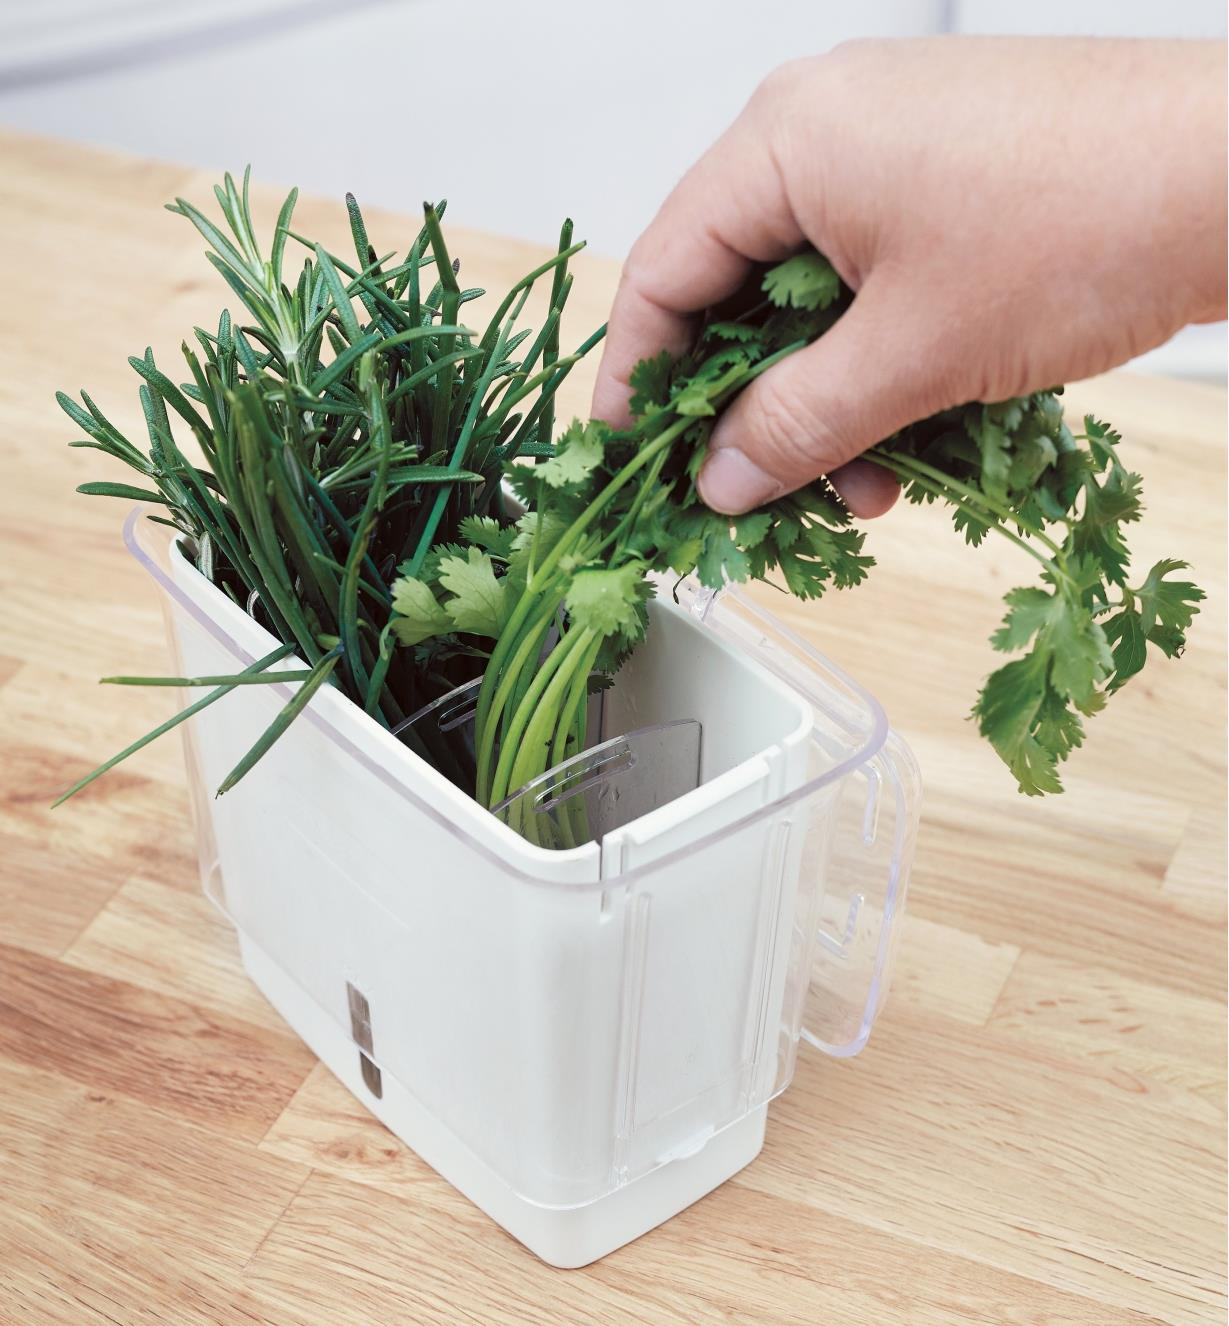 Adding herbs to the compartments in the Herb Keeper